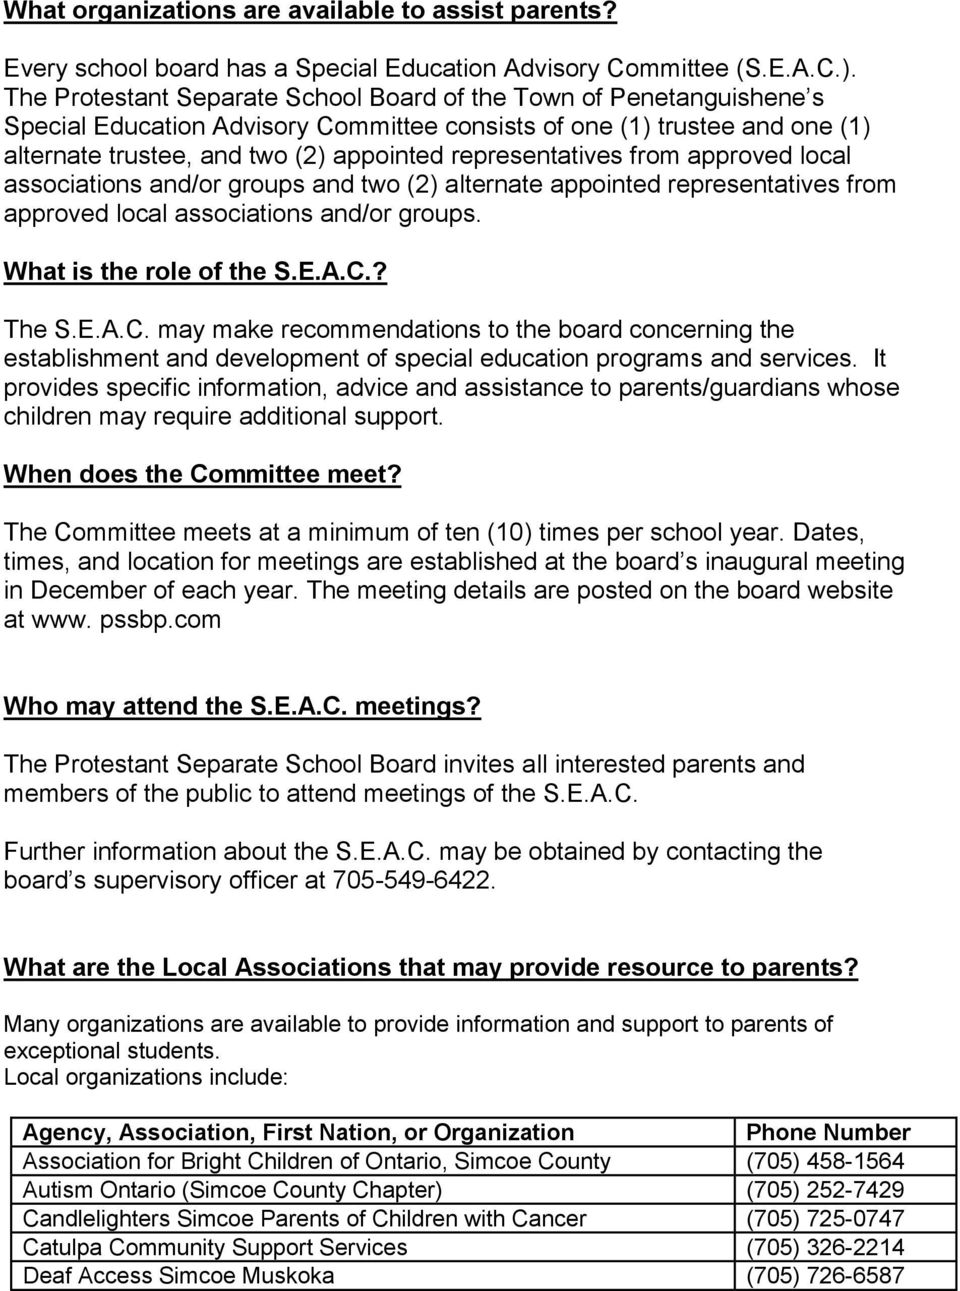 representatives from approved local associations and/or groups and two (2) alternate appointed representatives from approved local associations and/or groups. What is the role of the S.E.A.C.? The S.